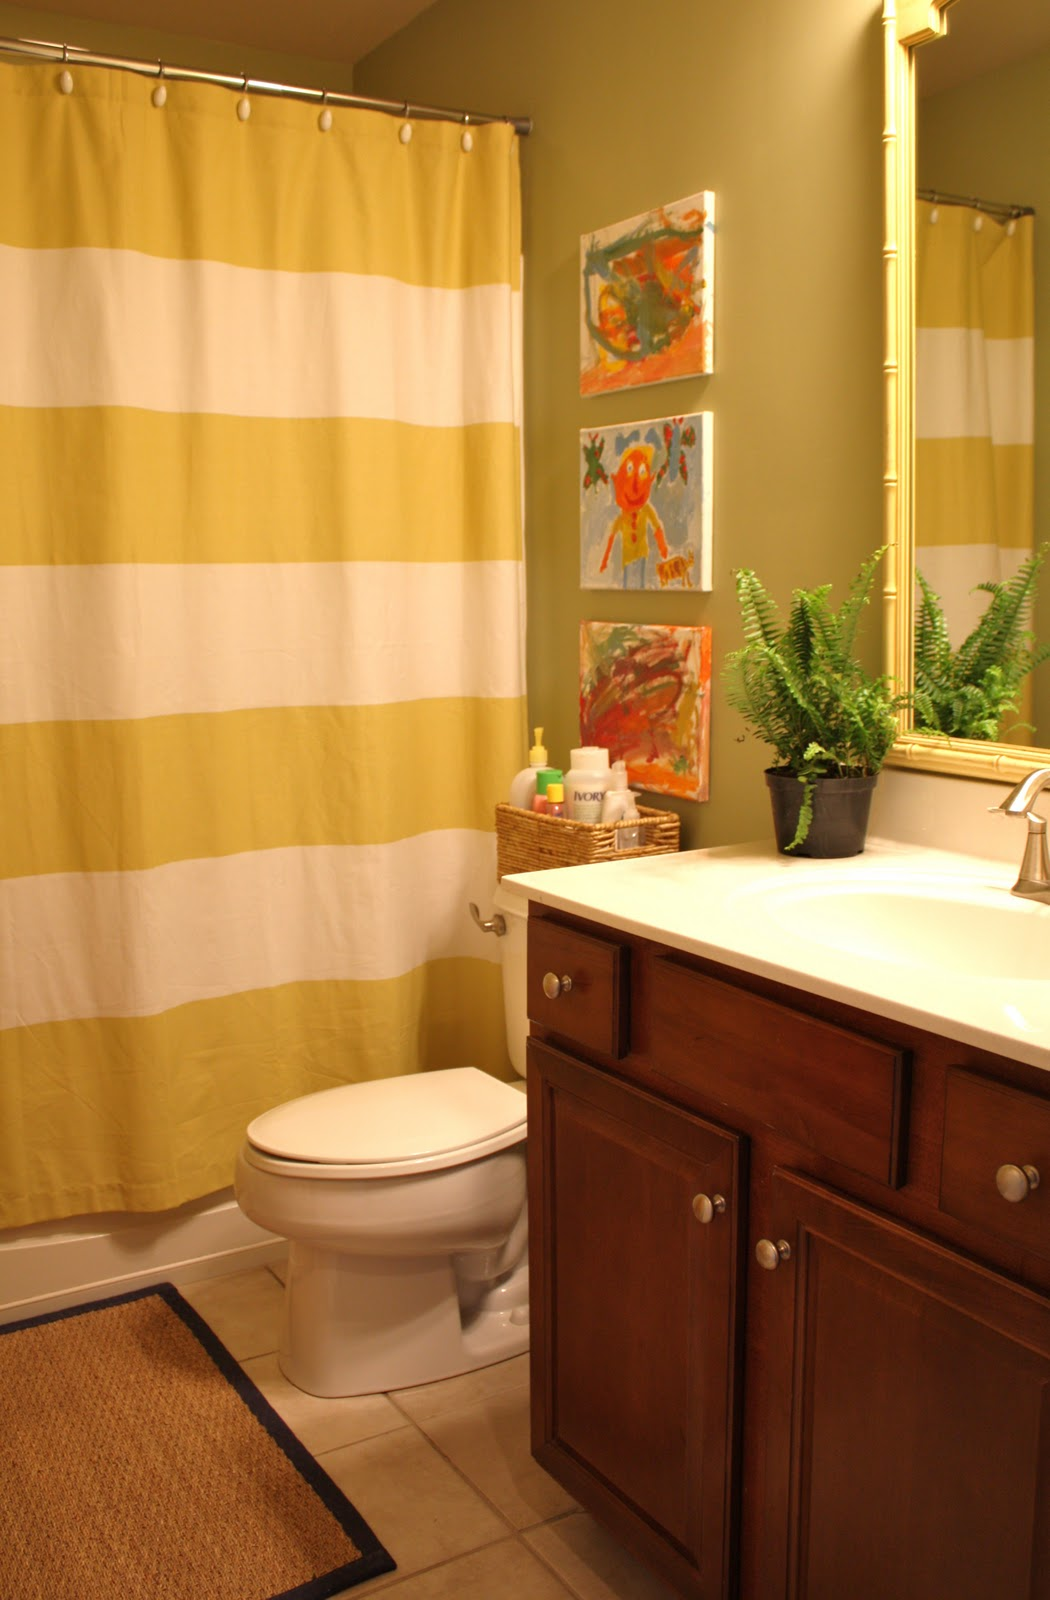 Children Bathroom Design My Kids 39 Bathroom Creating A Shared Space Emily A Clark